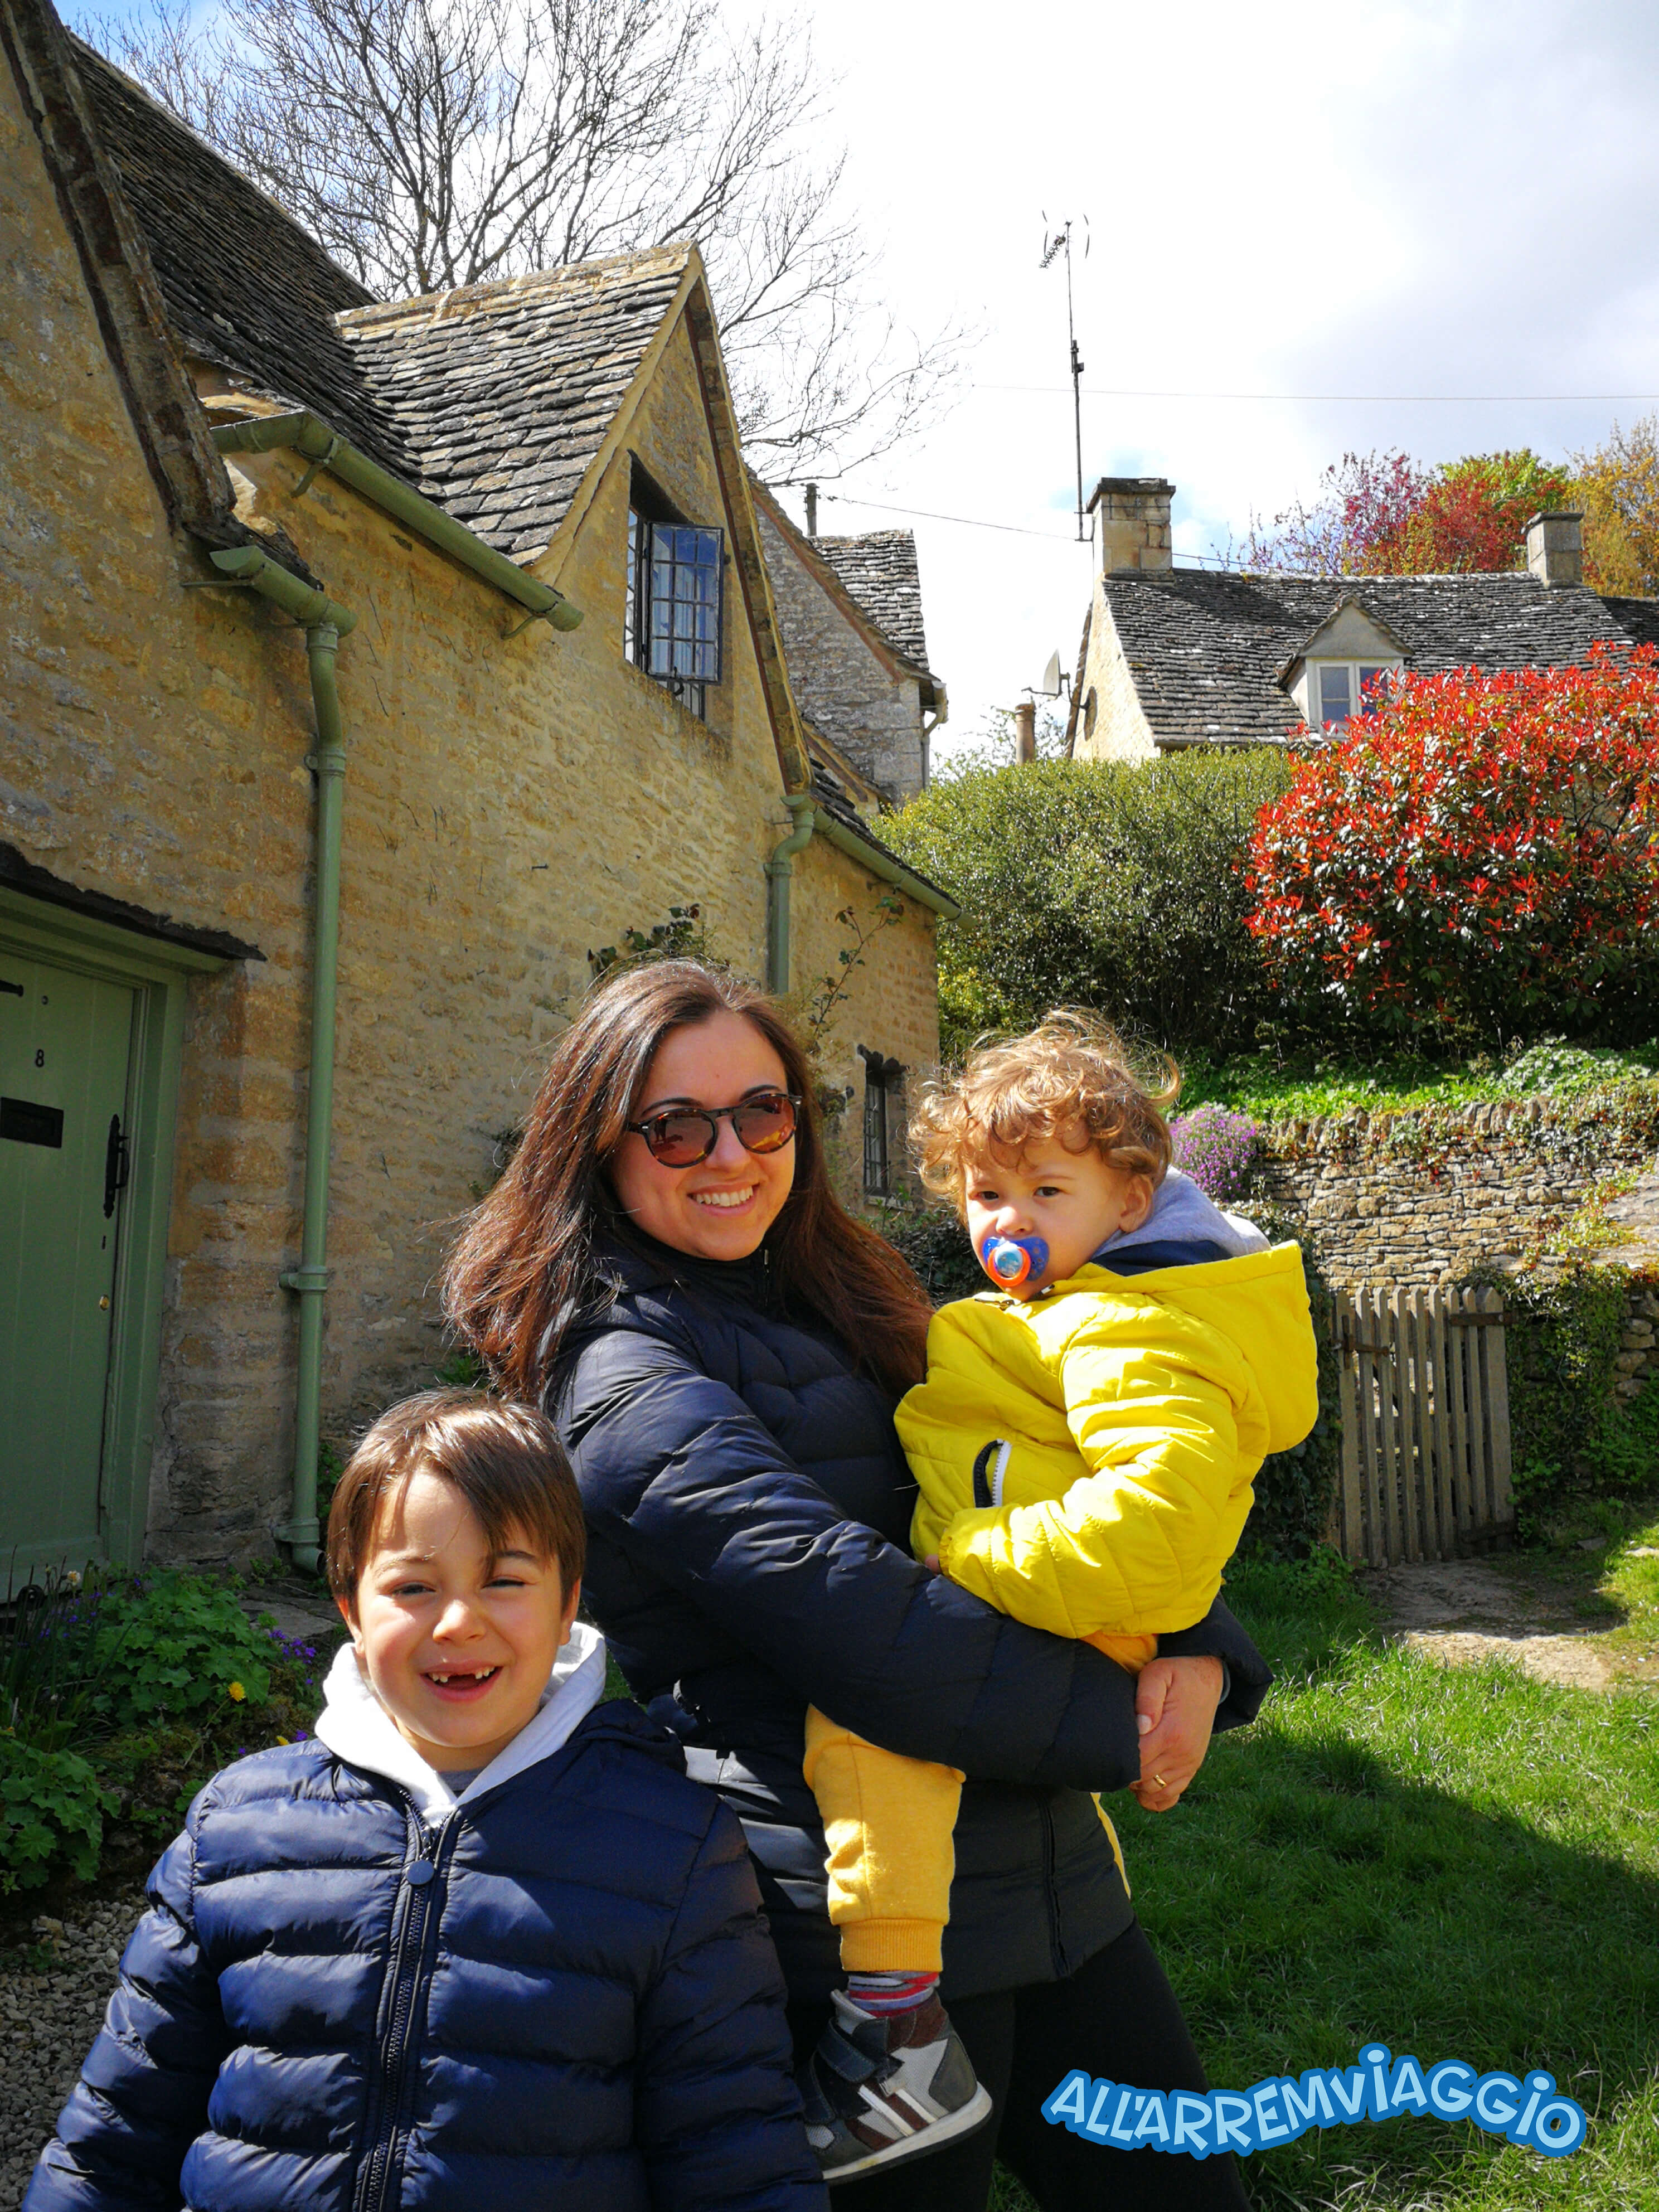 allarremviaggio, viaggiare, bambini, ontheroad, inghilterra, granbretagna, cotswolds, bibury, bourtononthewater, minsterlovell, burford, chippingcampden, colline, peppapig